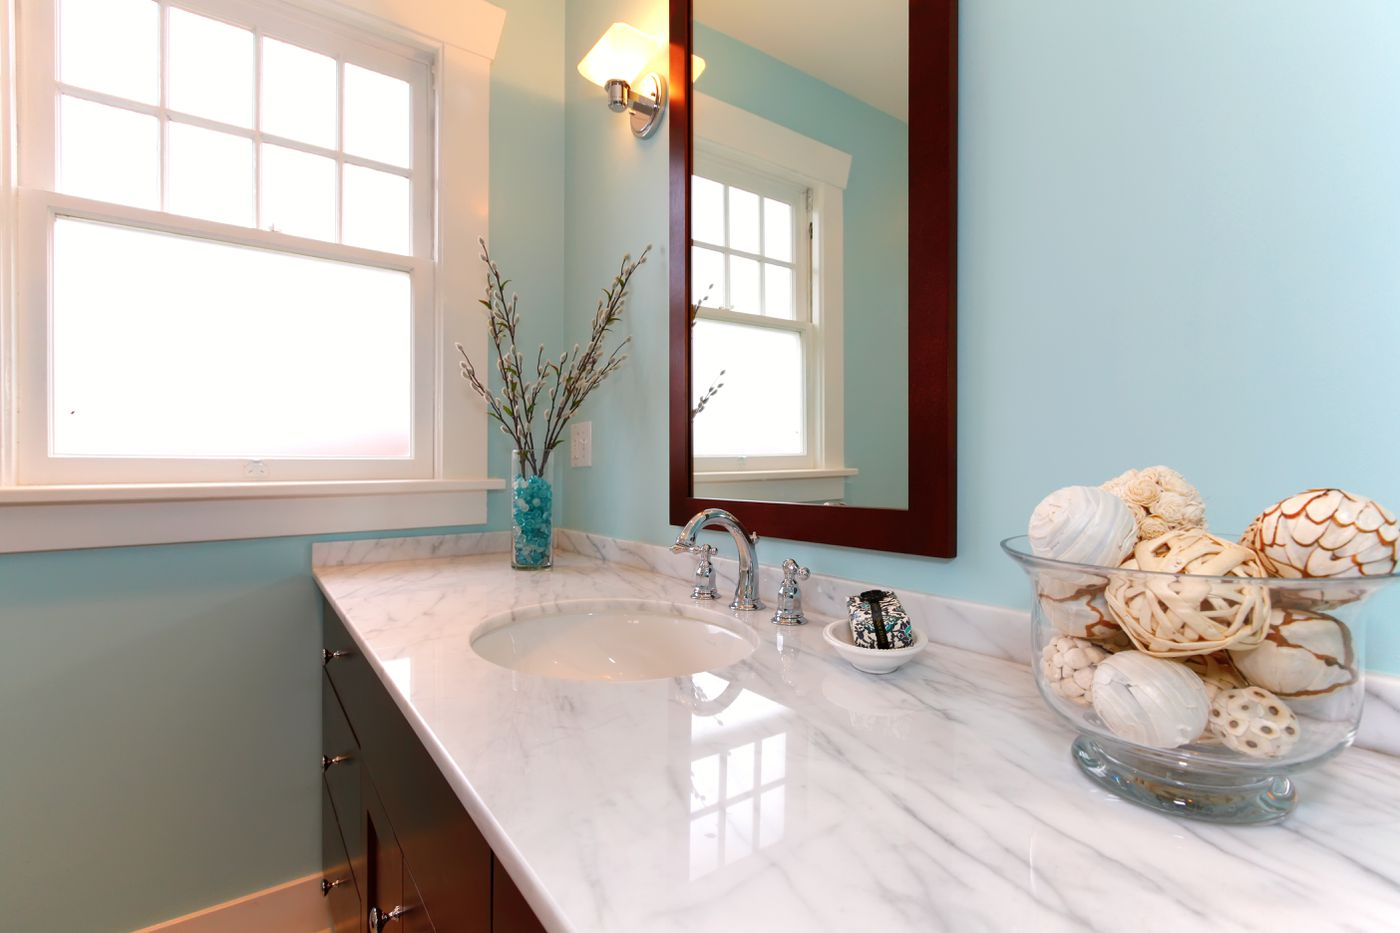 Ask Jennifer Adams: When building a home, how much should you customize?